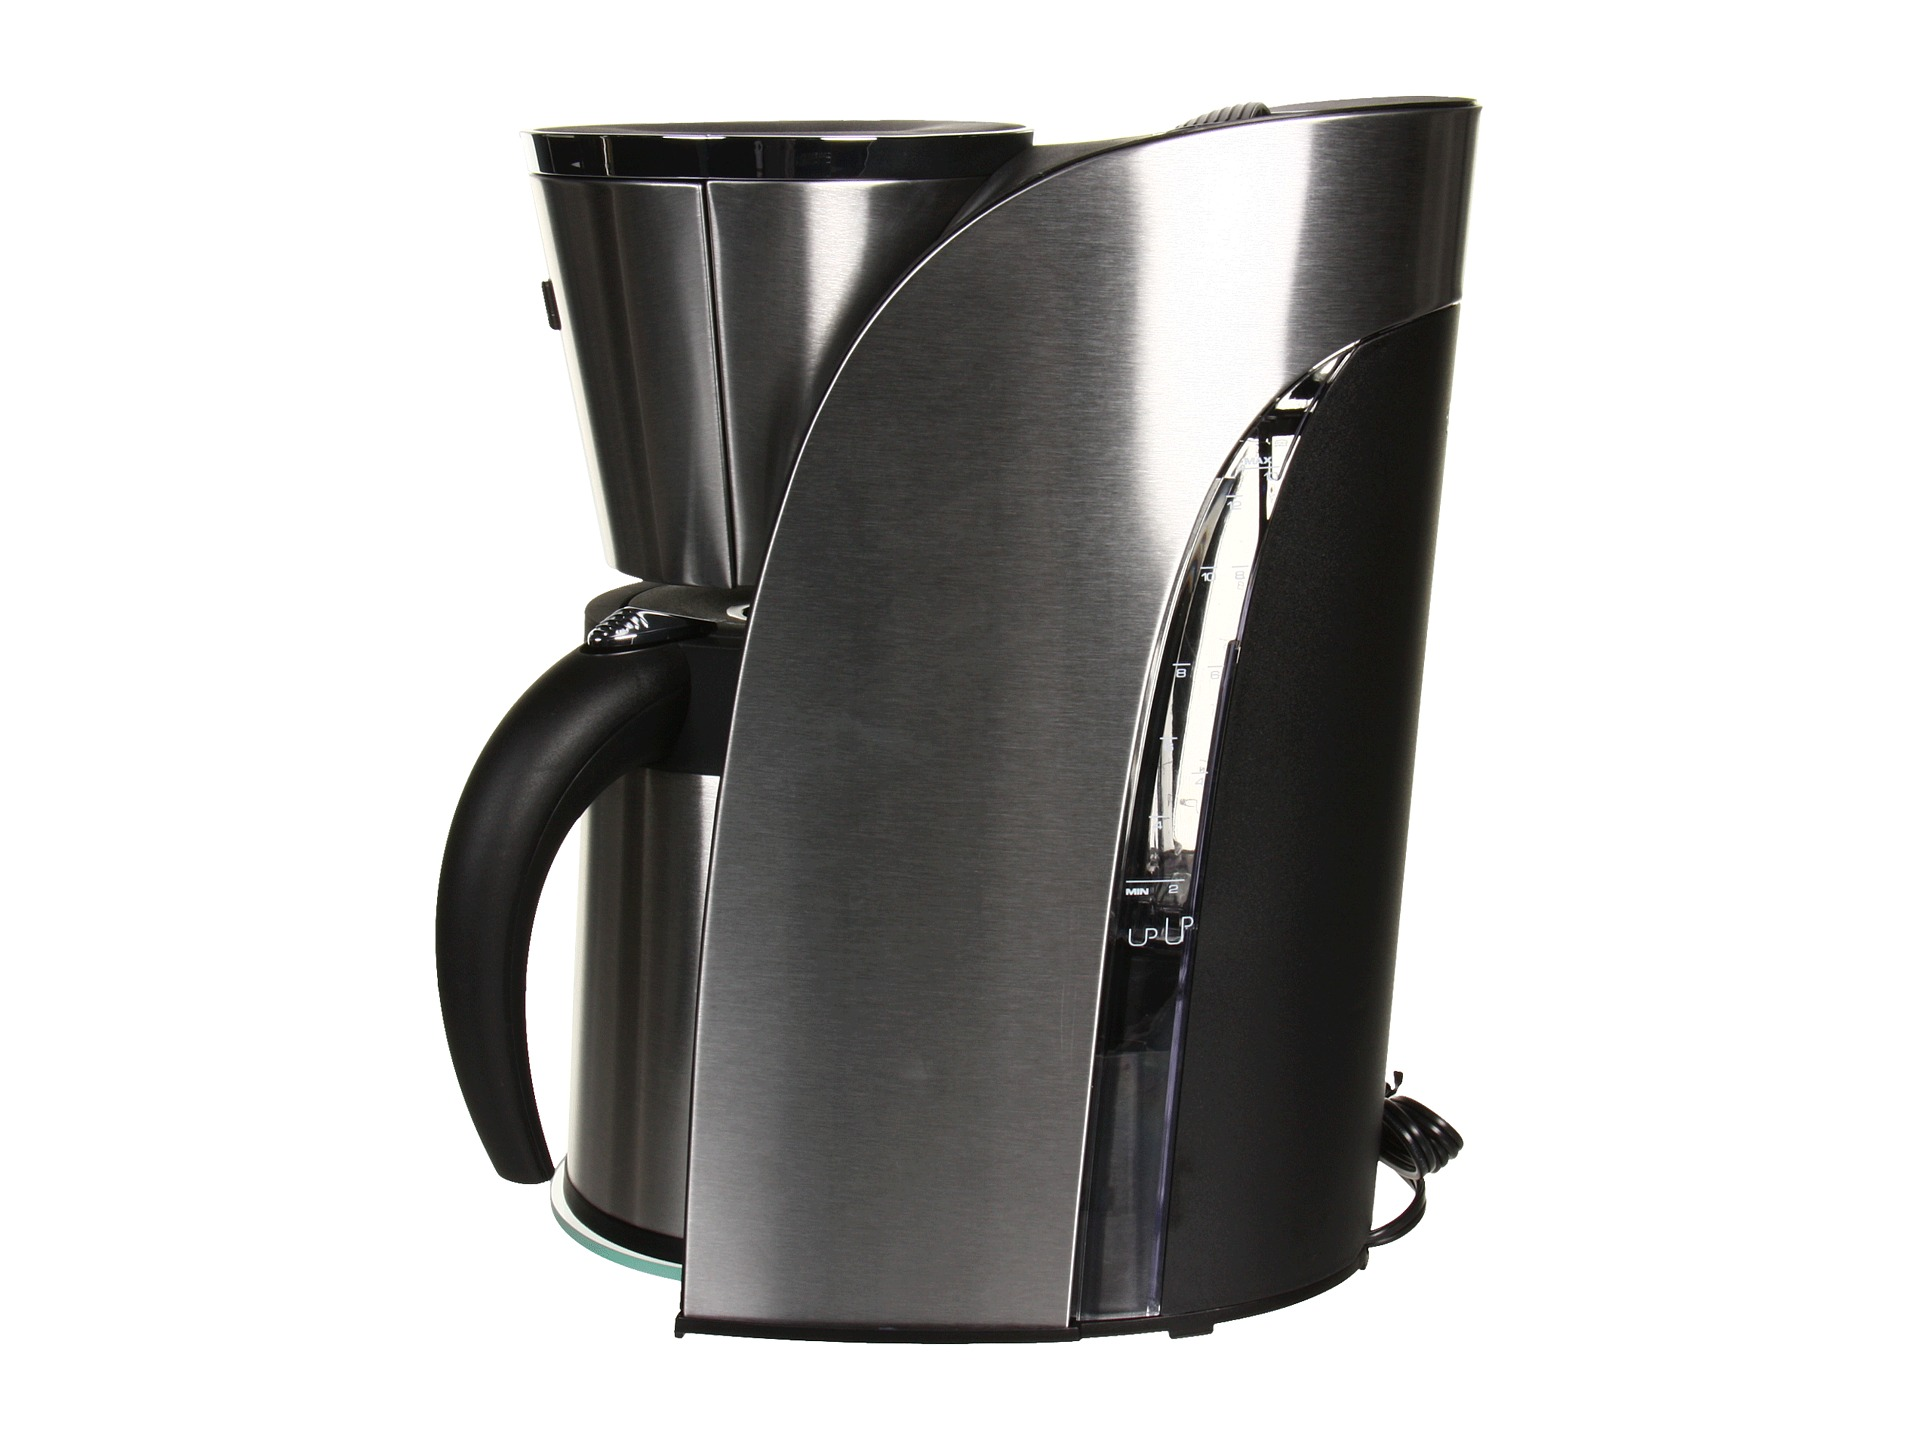 Thermal Coffee Maker With K Cup : Krups Kt720d50 10 Cup Thermal Filter Coffee Maker Shipped Free at Zappos